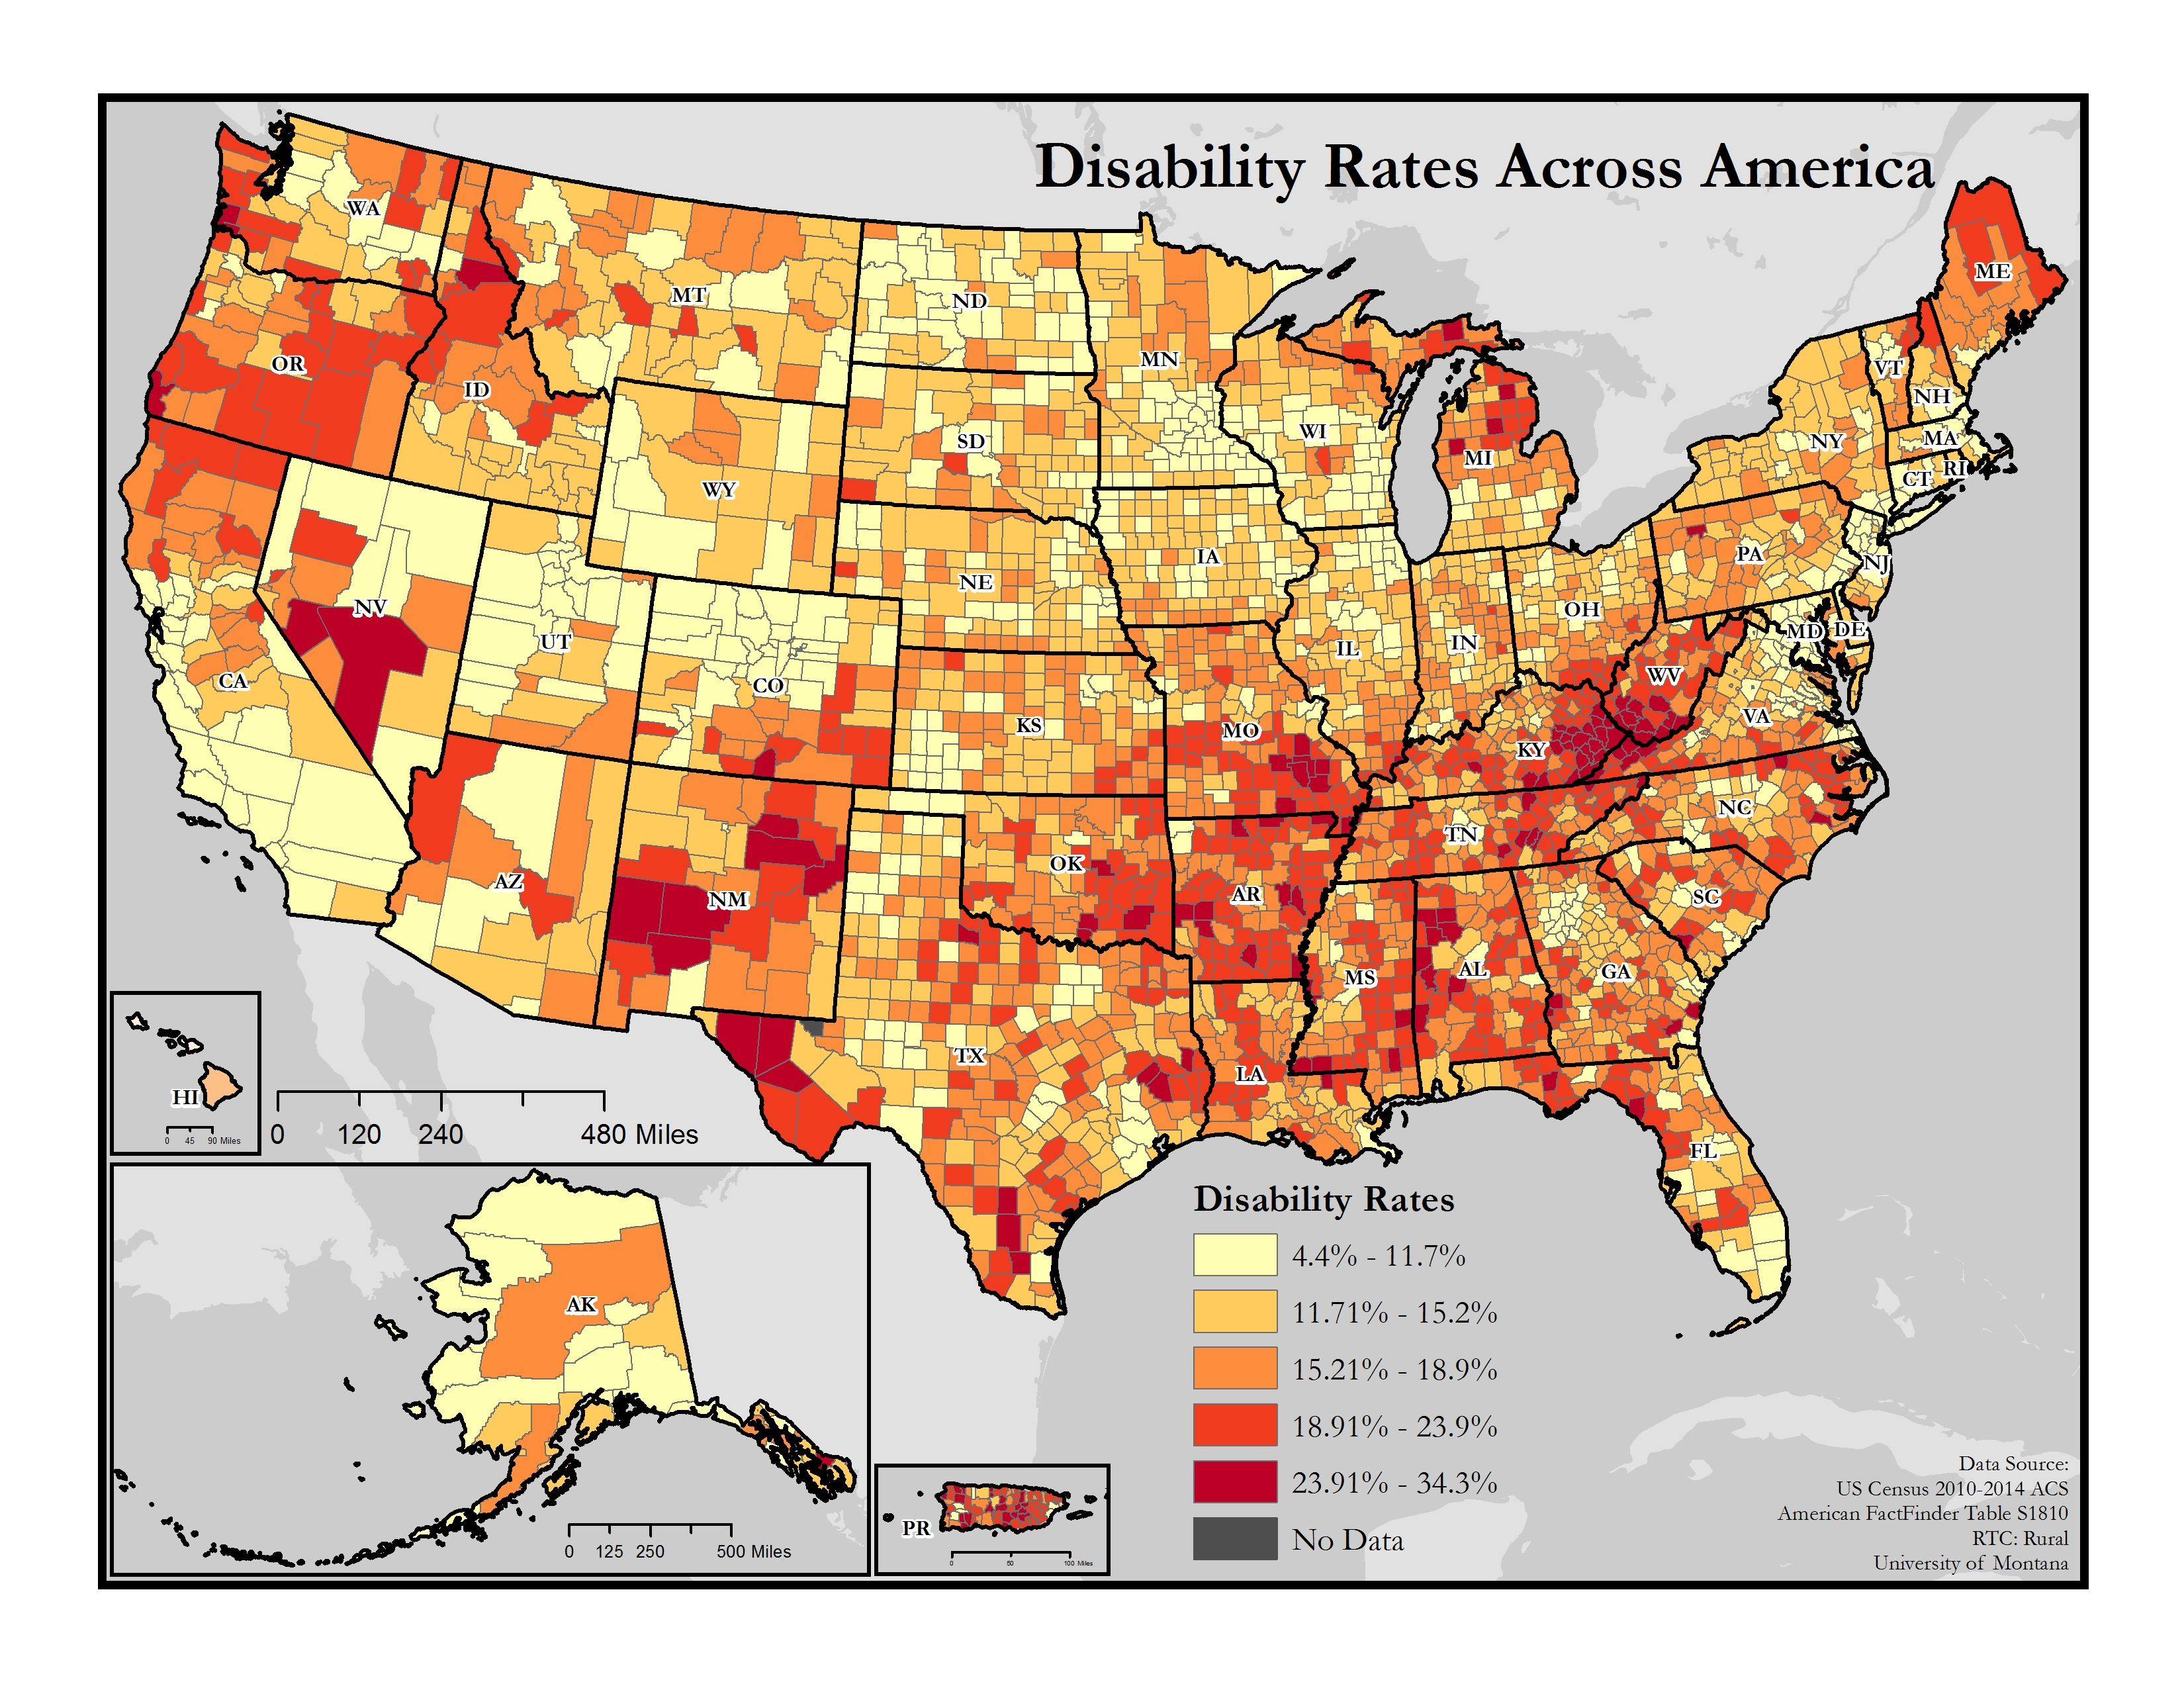 Map of the United States showing general rates of disability by county, long description in webpage content below the map.